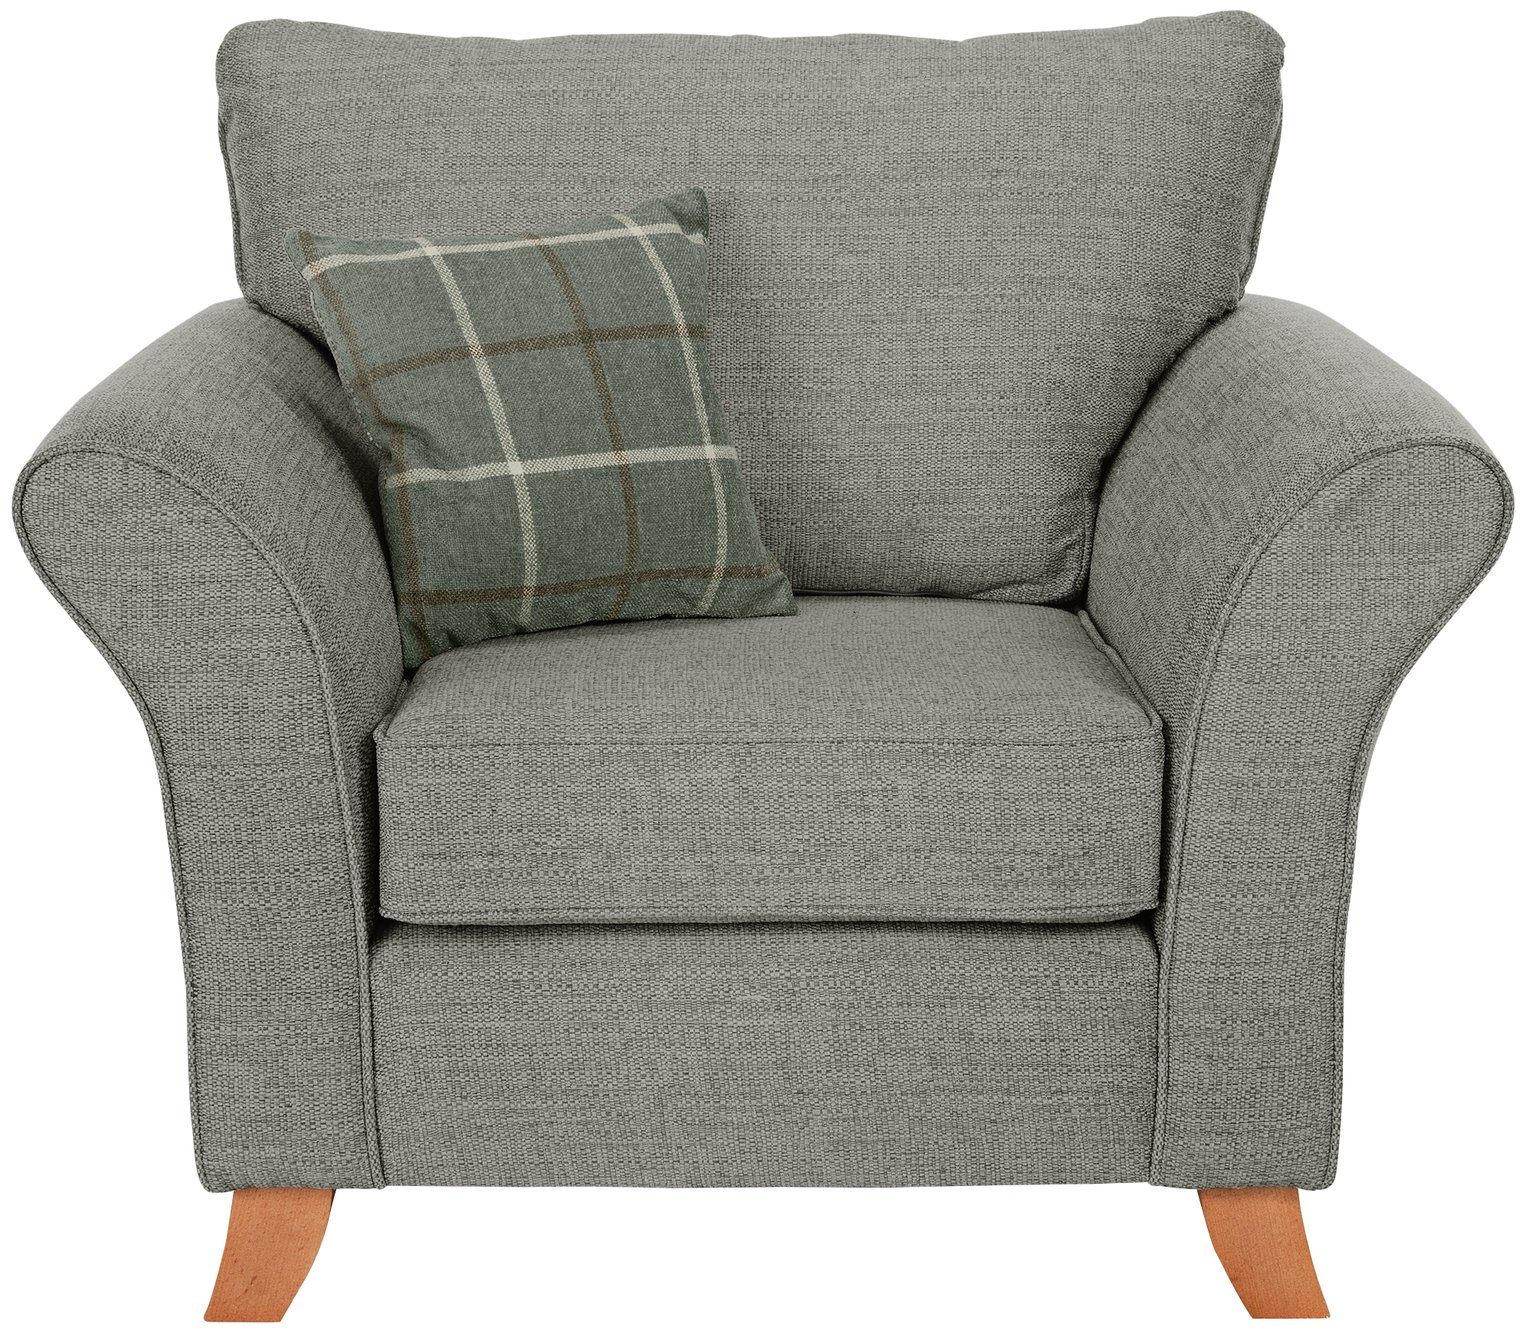 Argos Home Kayla Fabric Armchair - Grey